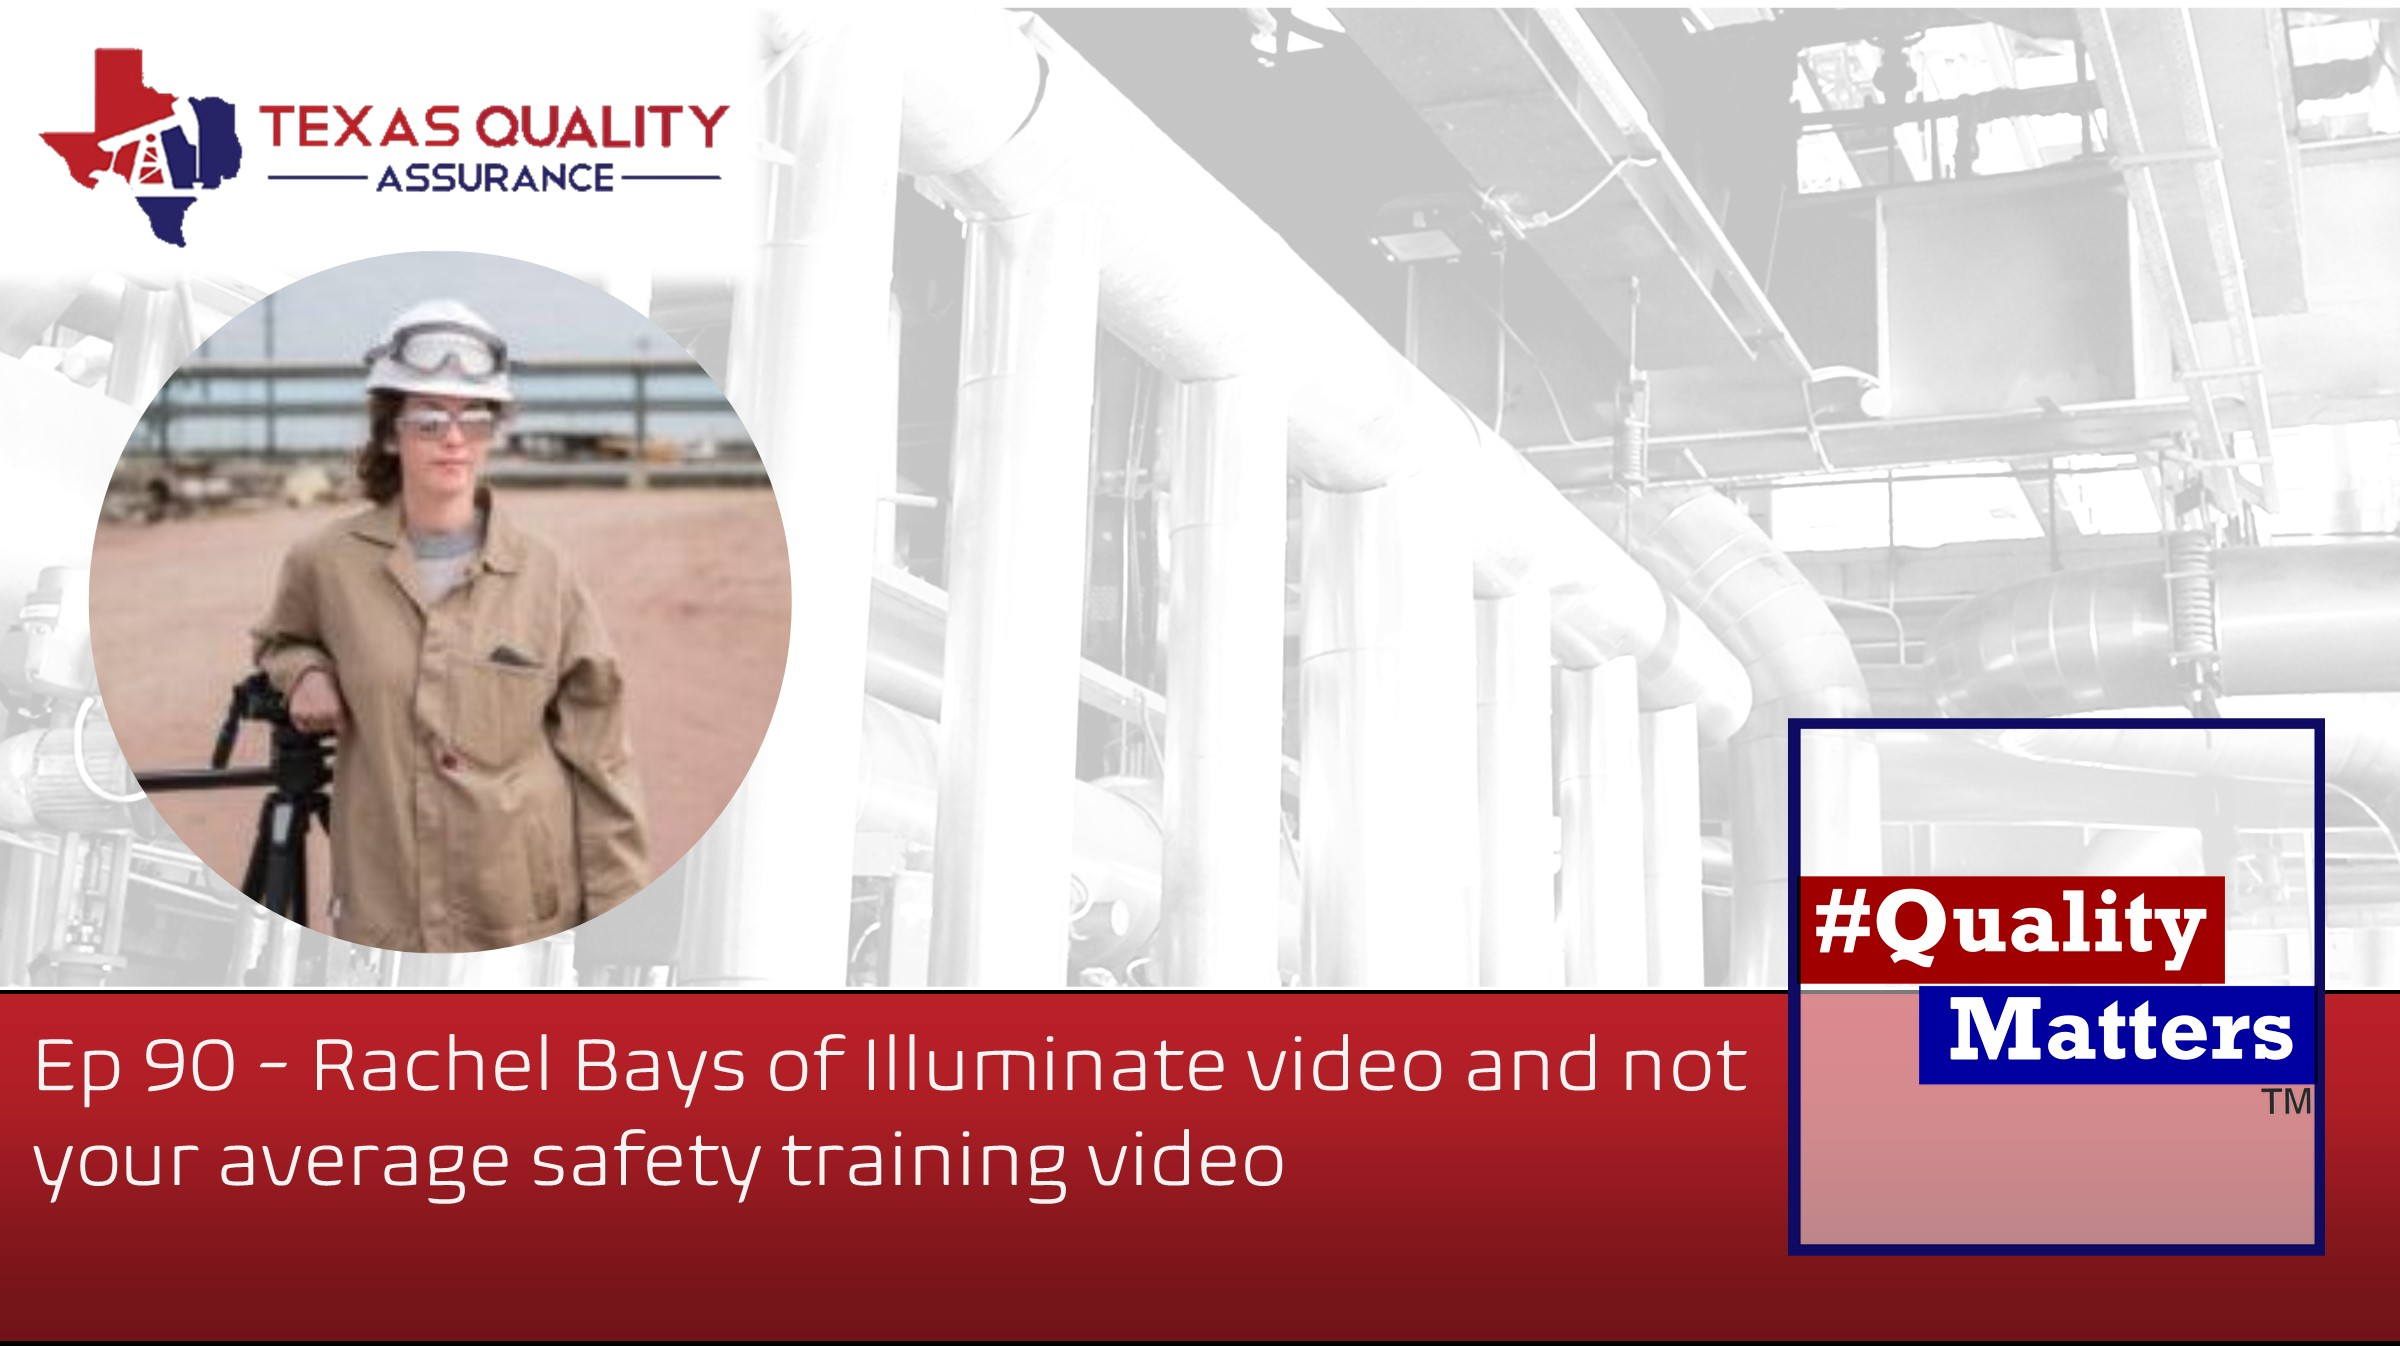 Ep 90 – Rachel Bays of Illuminate video and not your average safety training video